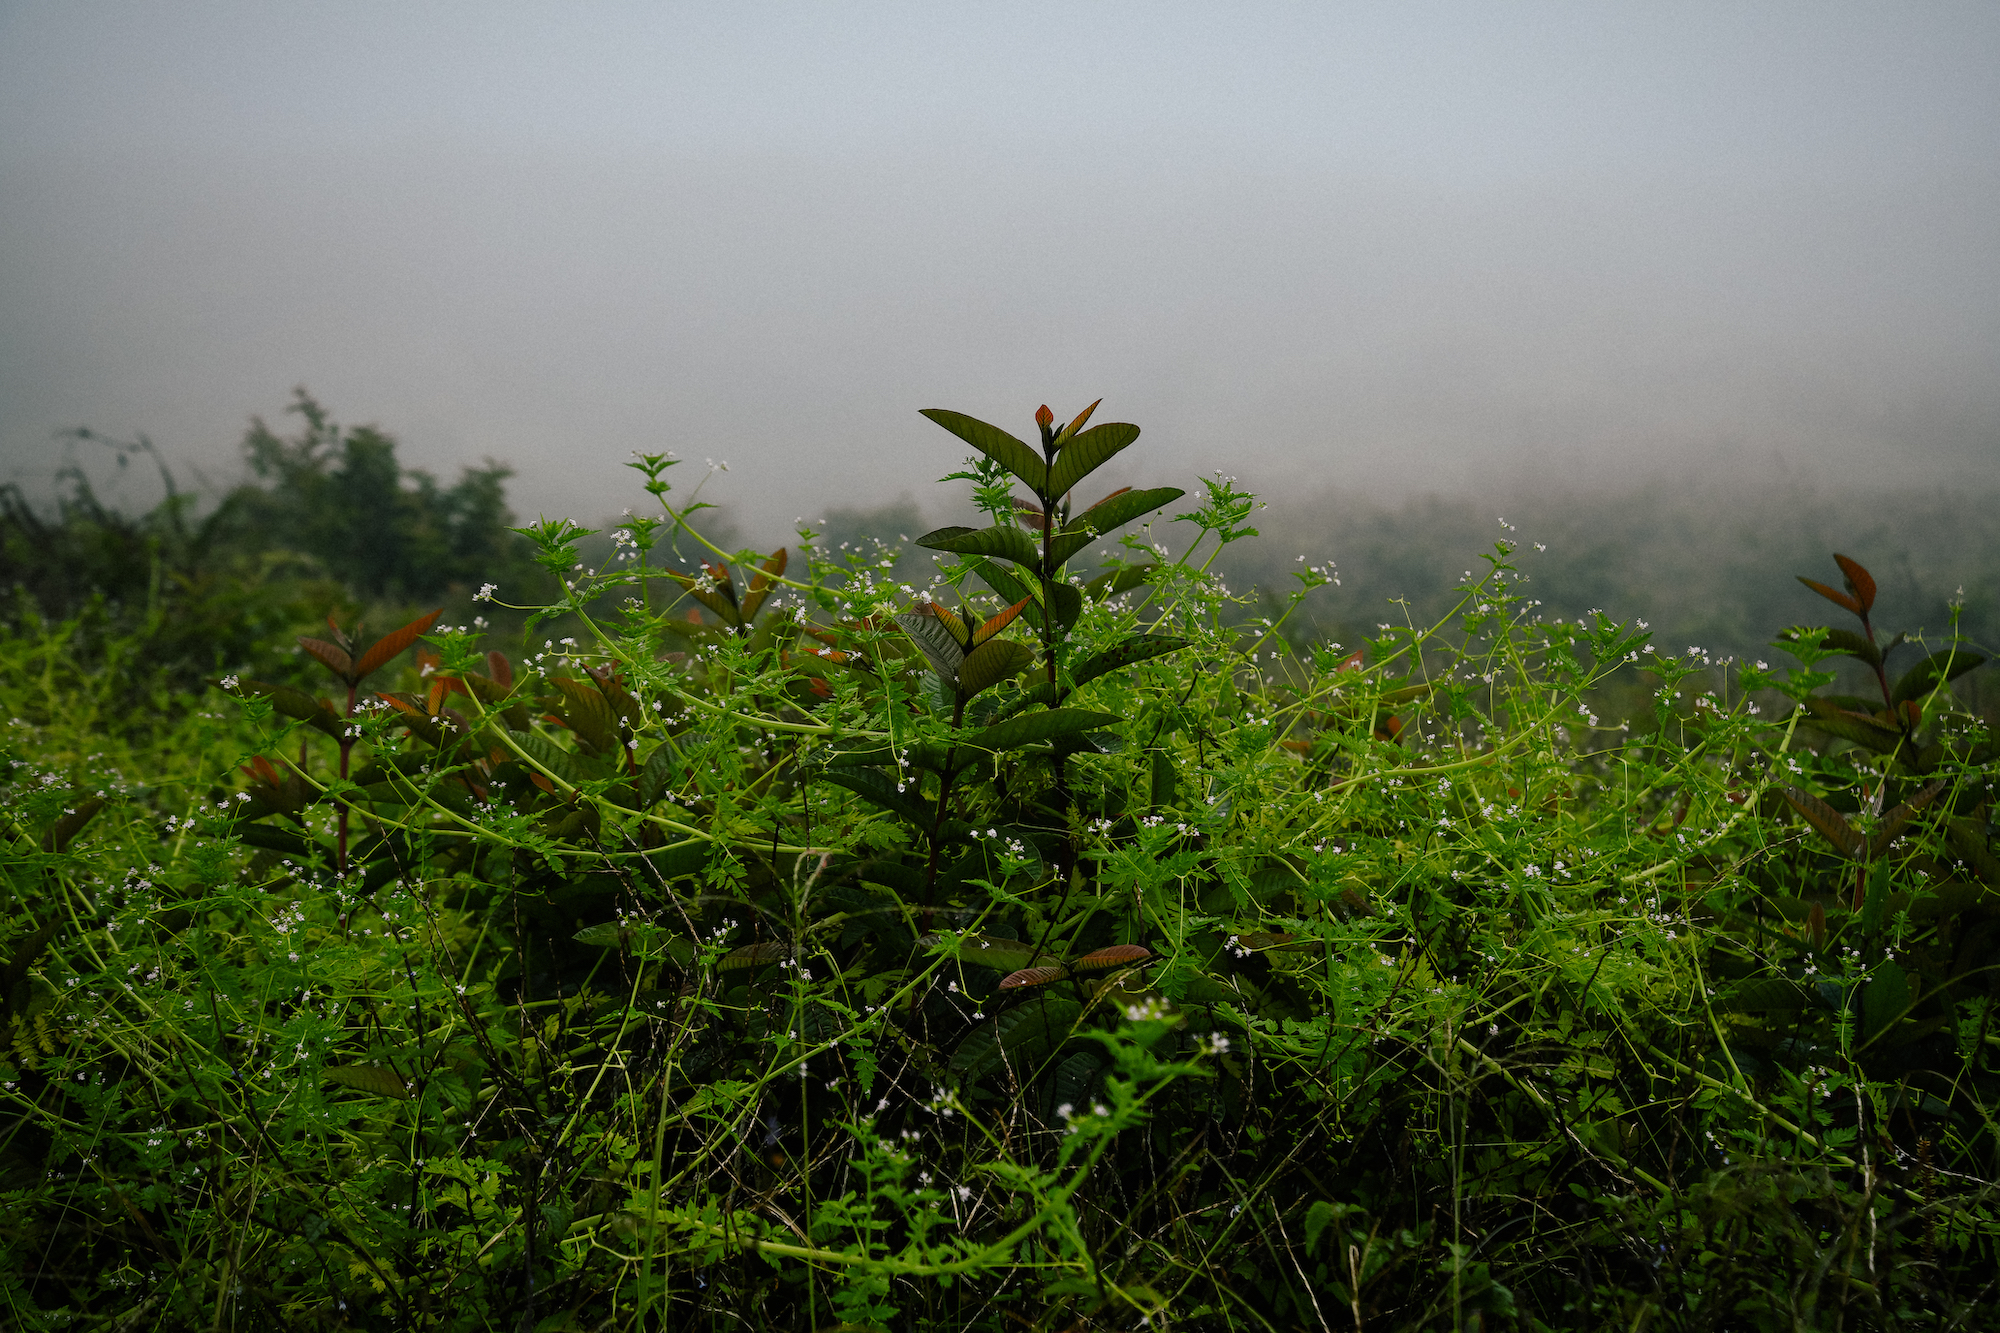 foggy morning plant in the galapagos